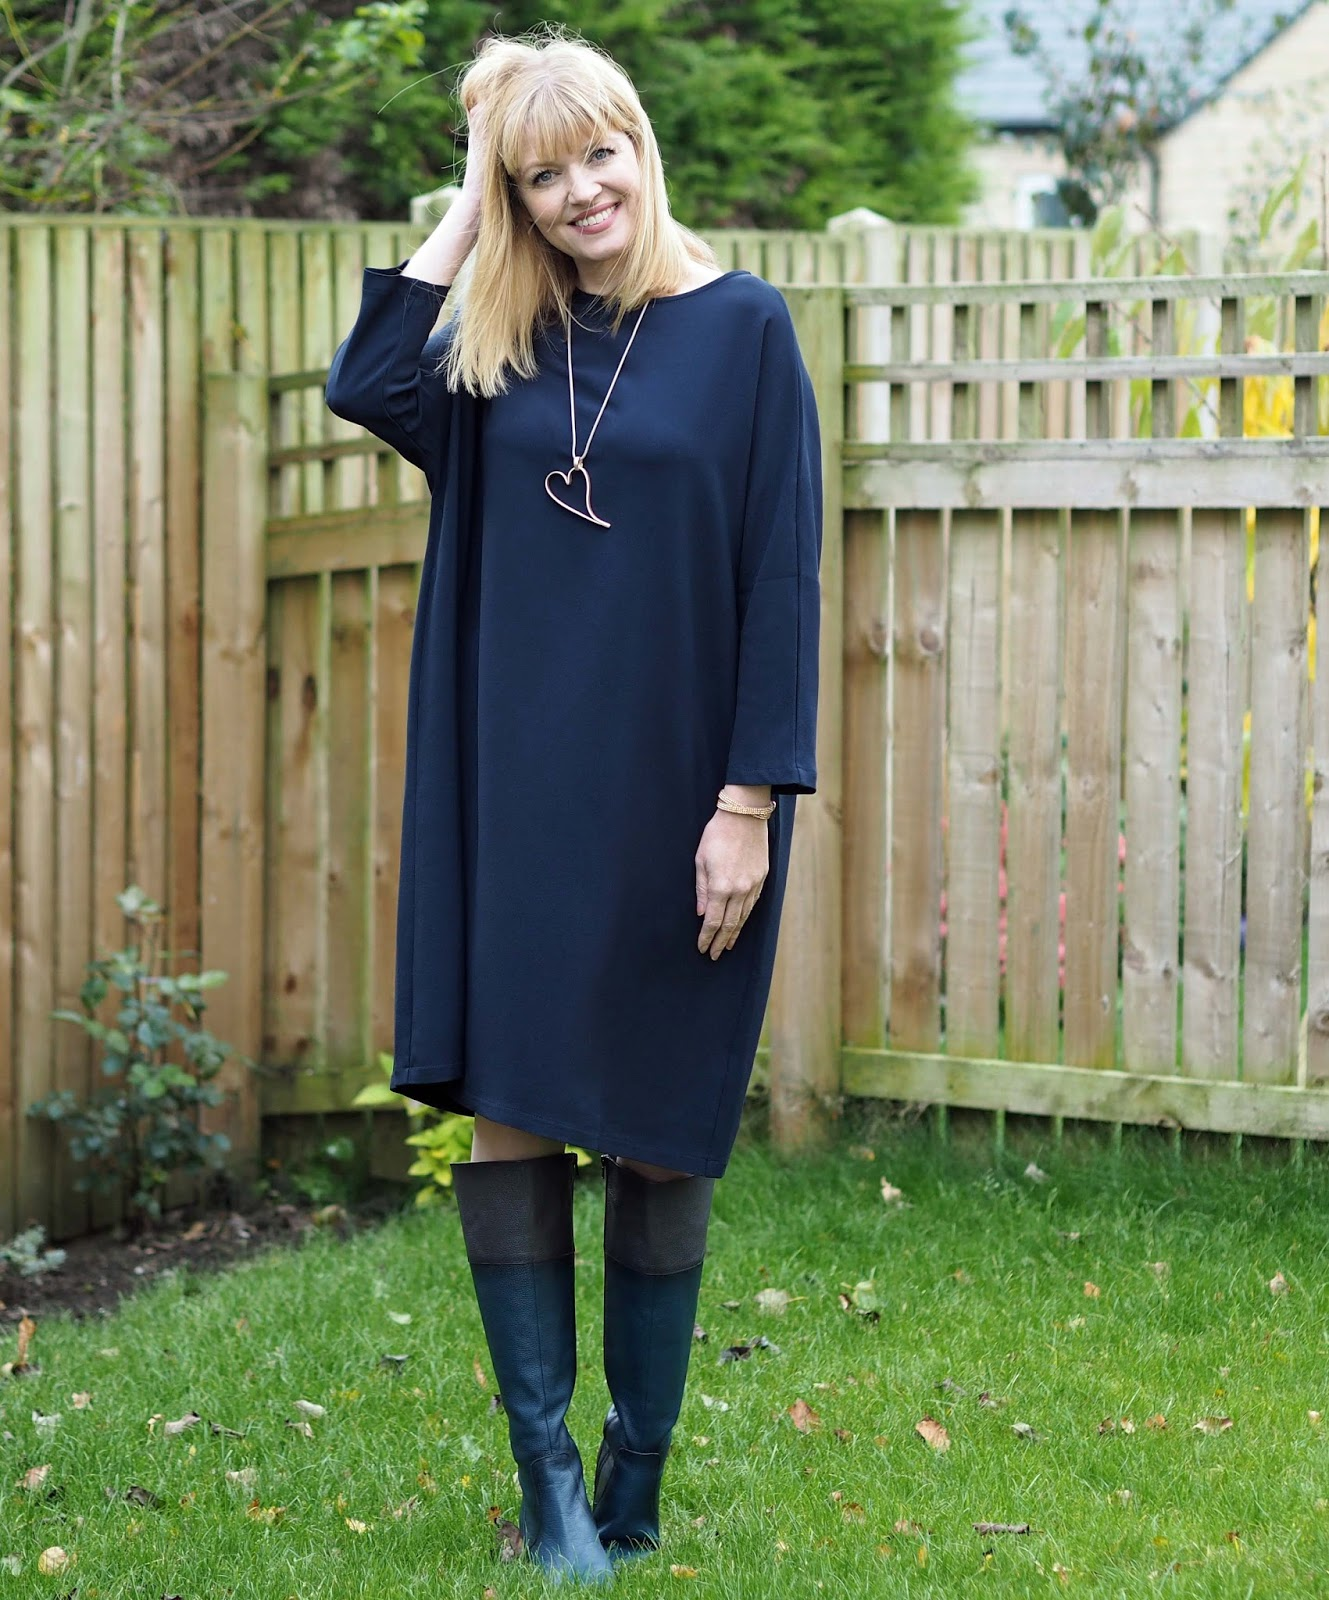 Crepe navy cocoon dress with navy and brown leather knee high boots, over 40 style